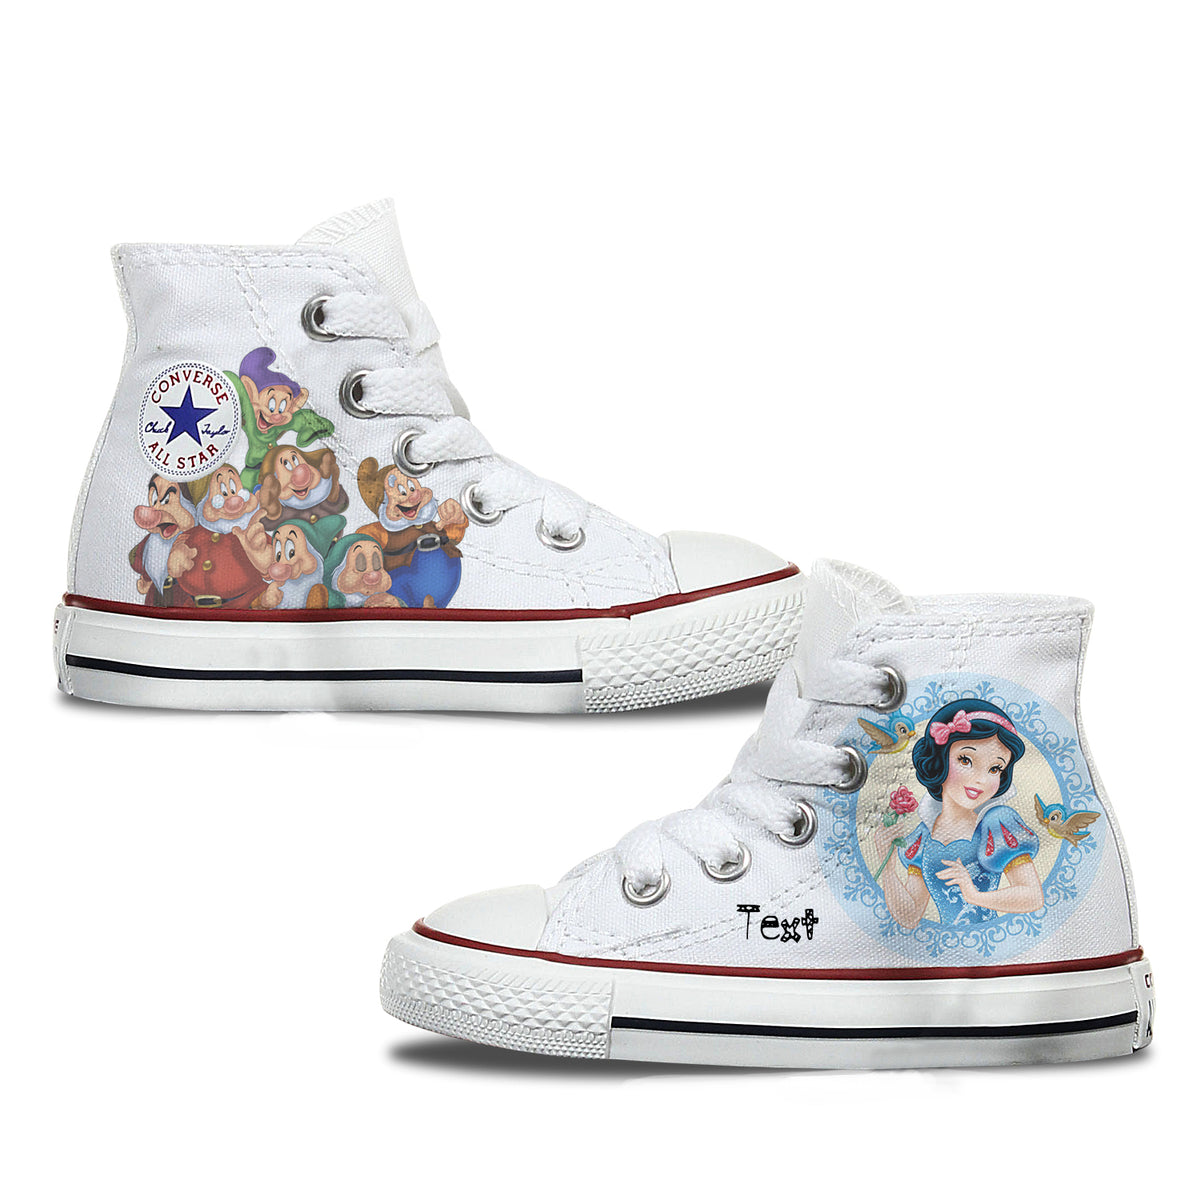 Snow White Custom Converse